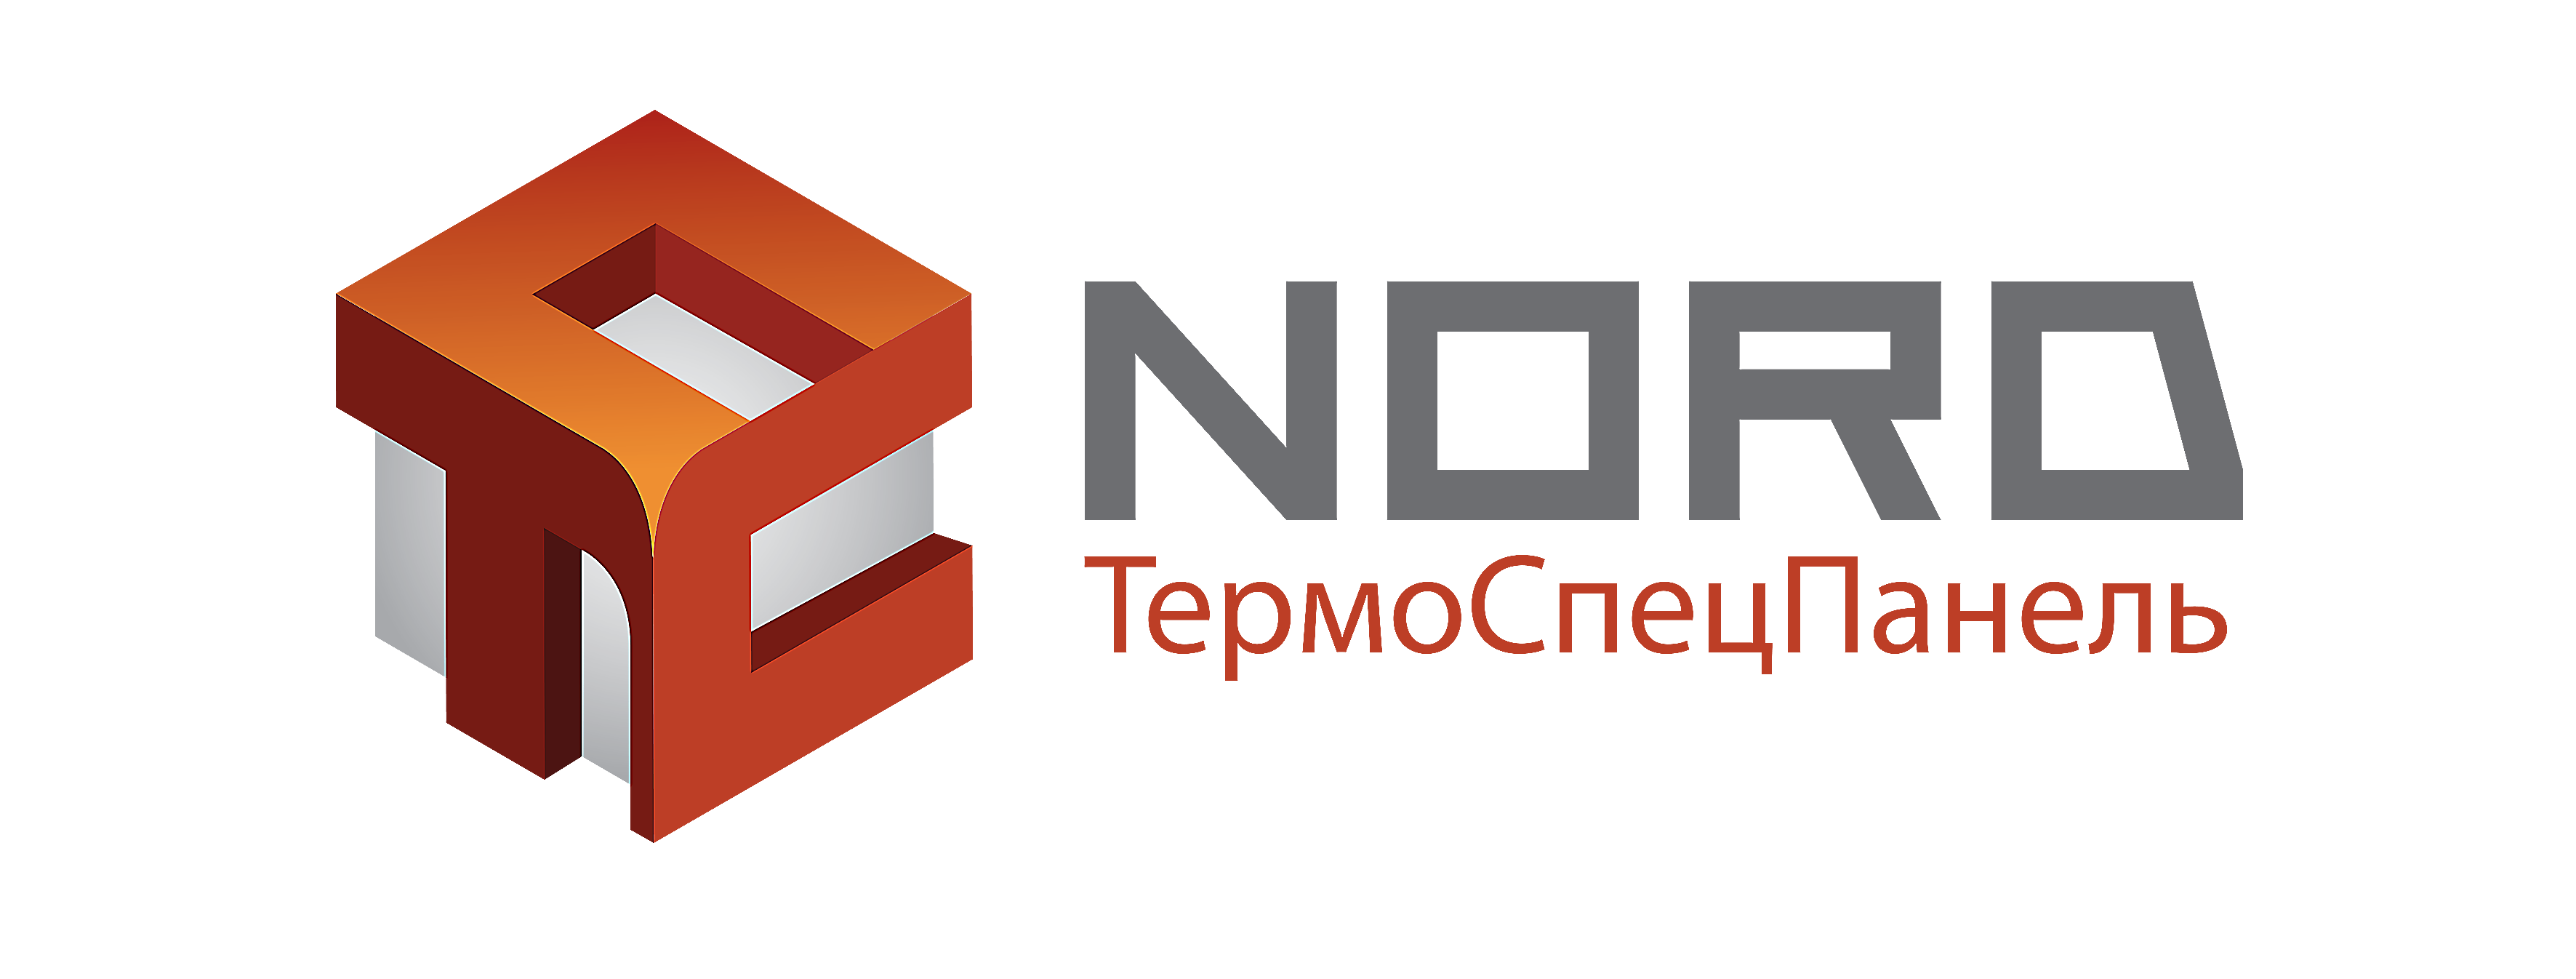 http://tsp-nord.ru/wp-content/uploads/2018/04/tsp1-1.png